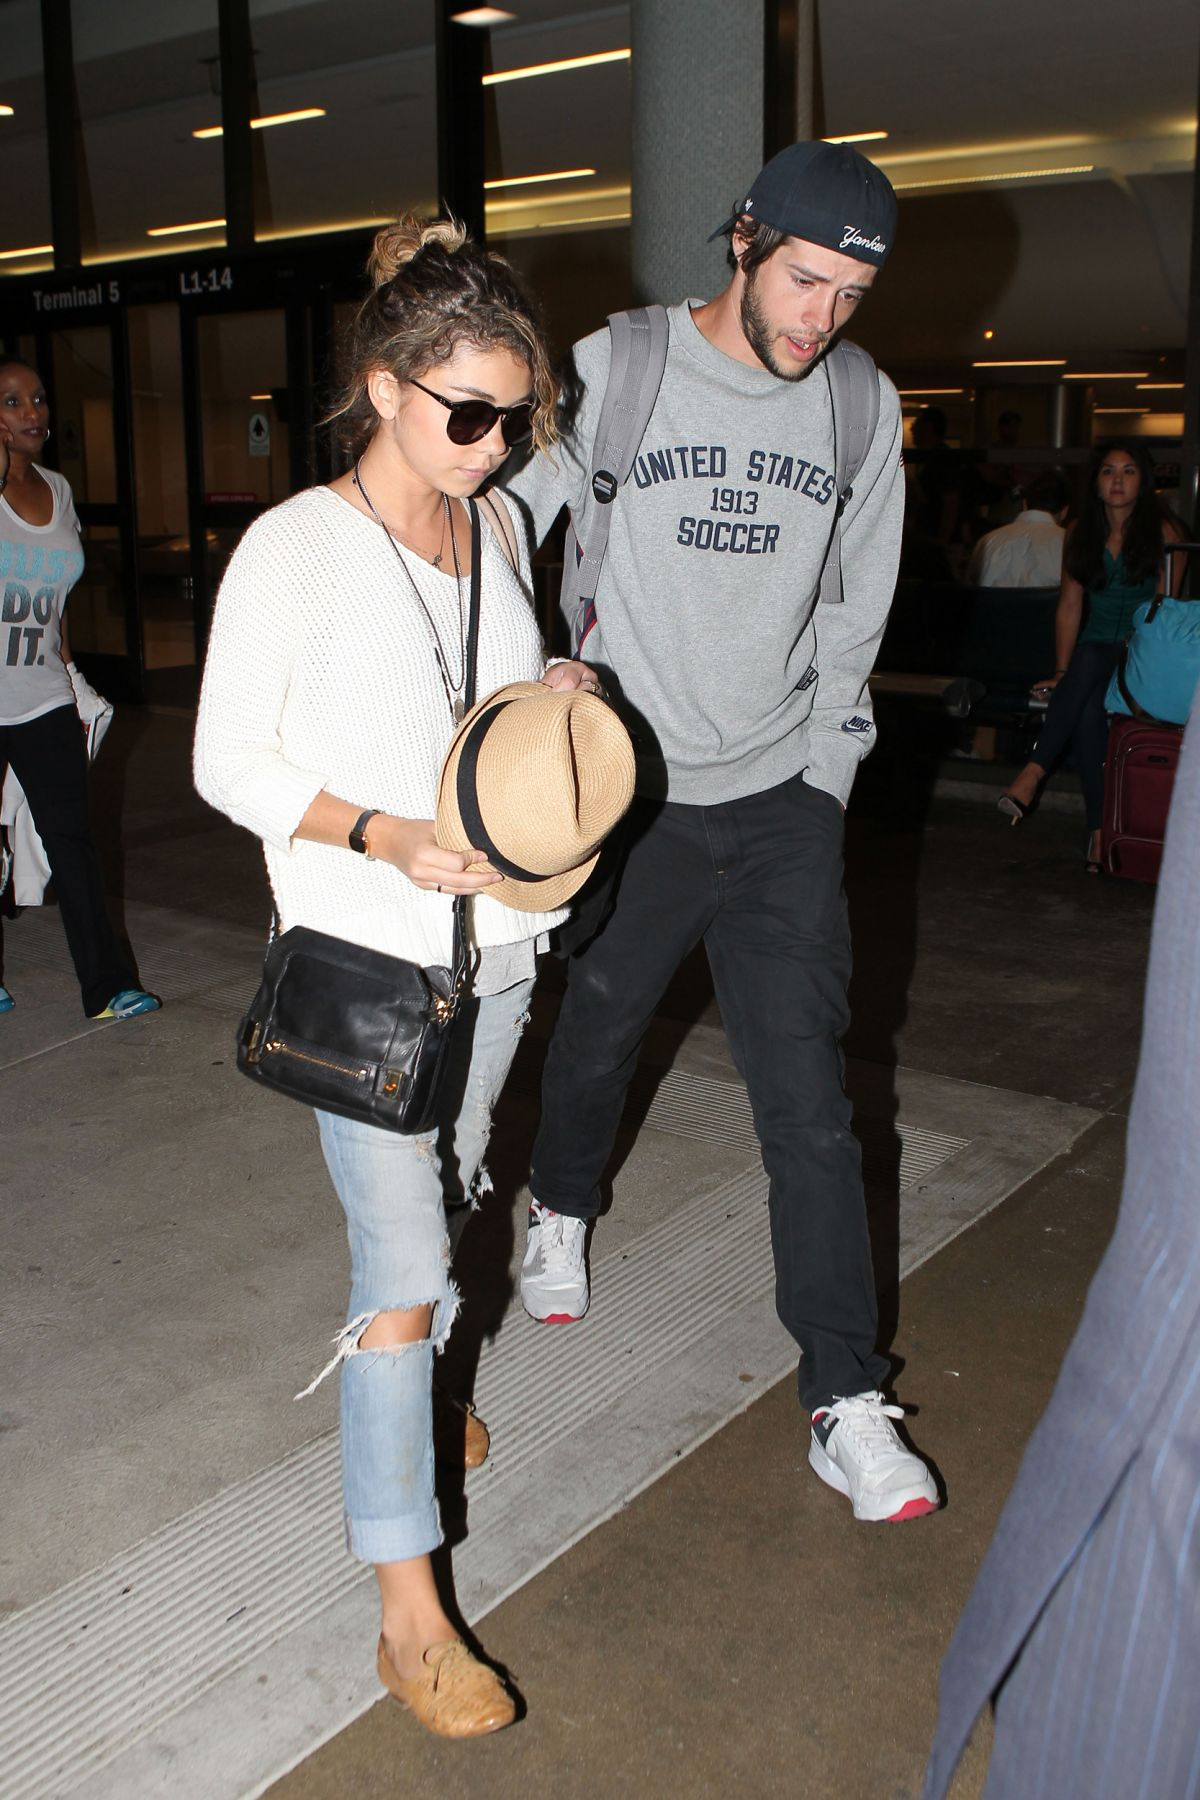 SARAH HYLAND at LAX Airport in Los Angeles